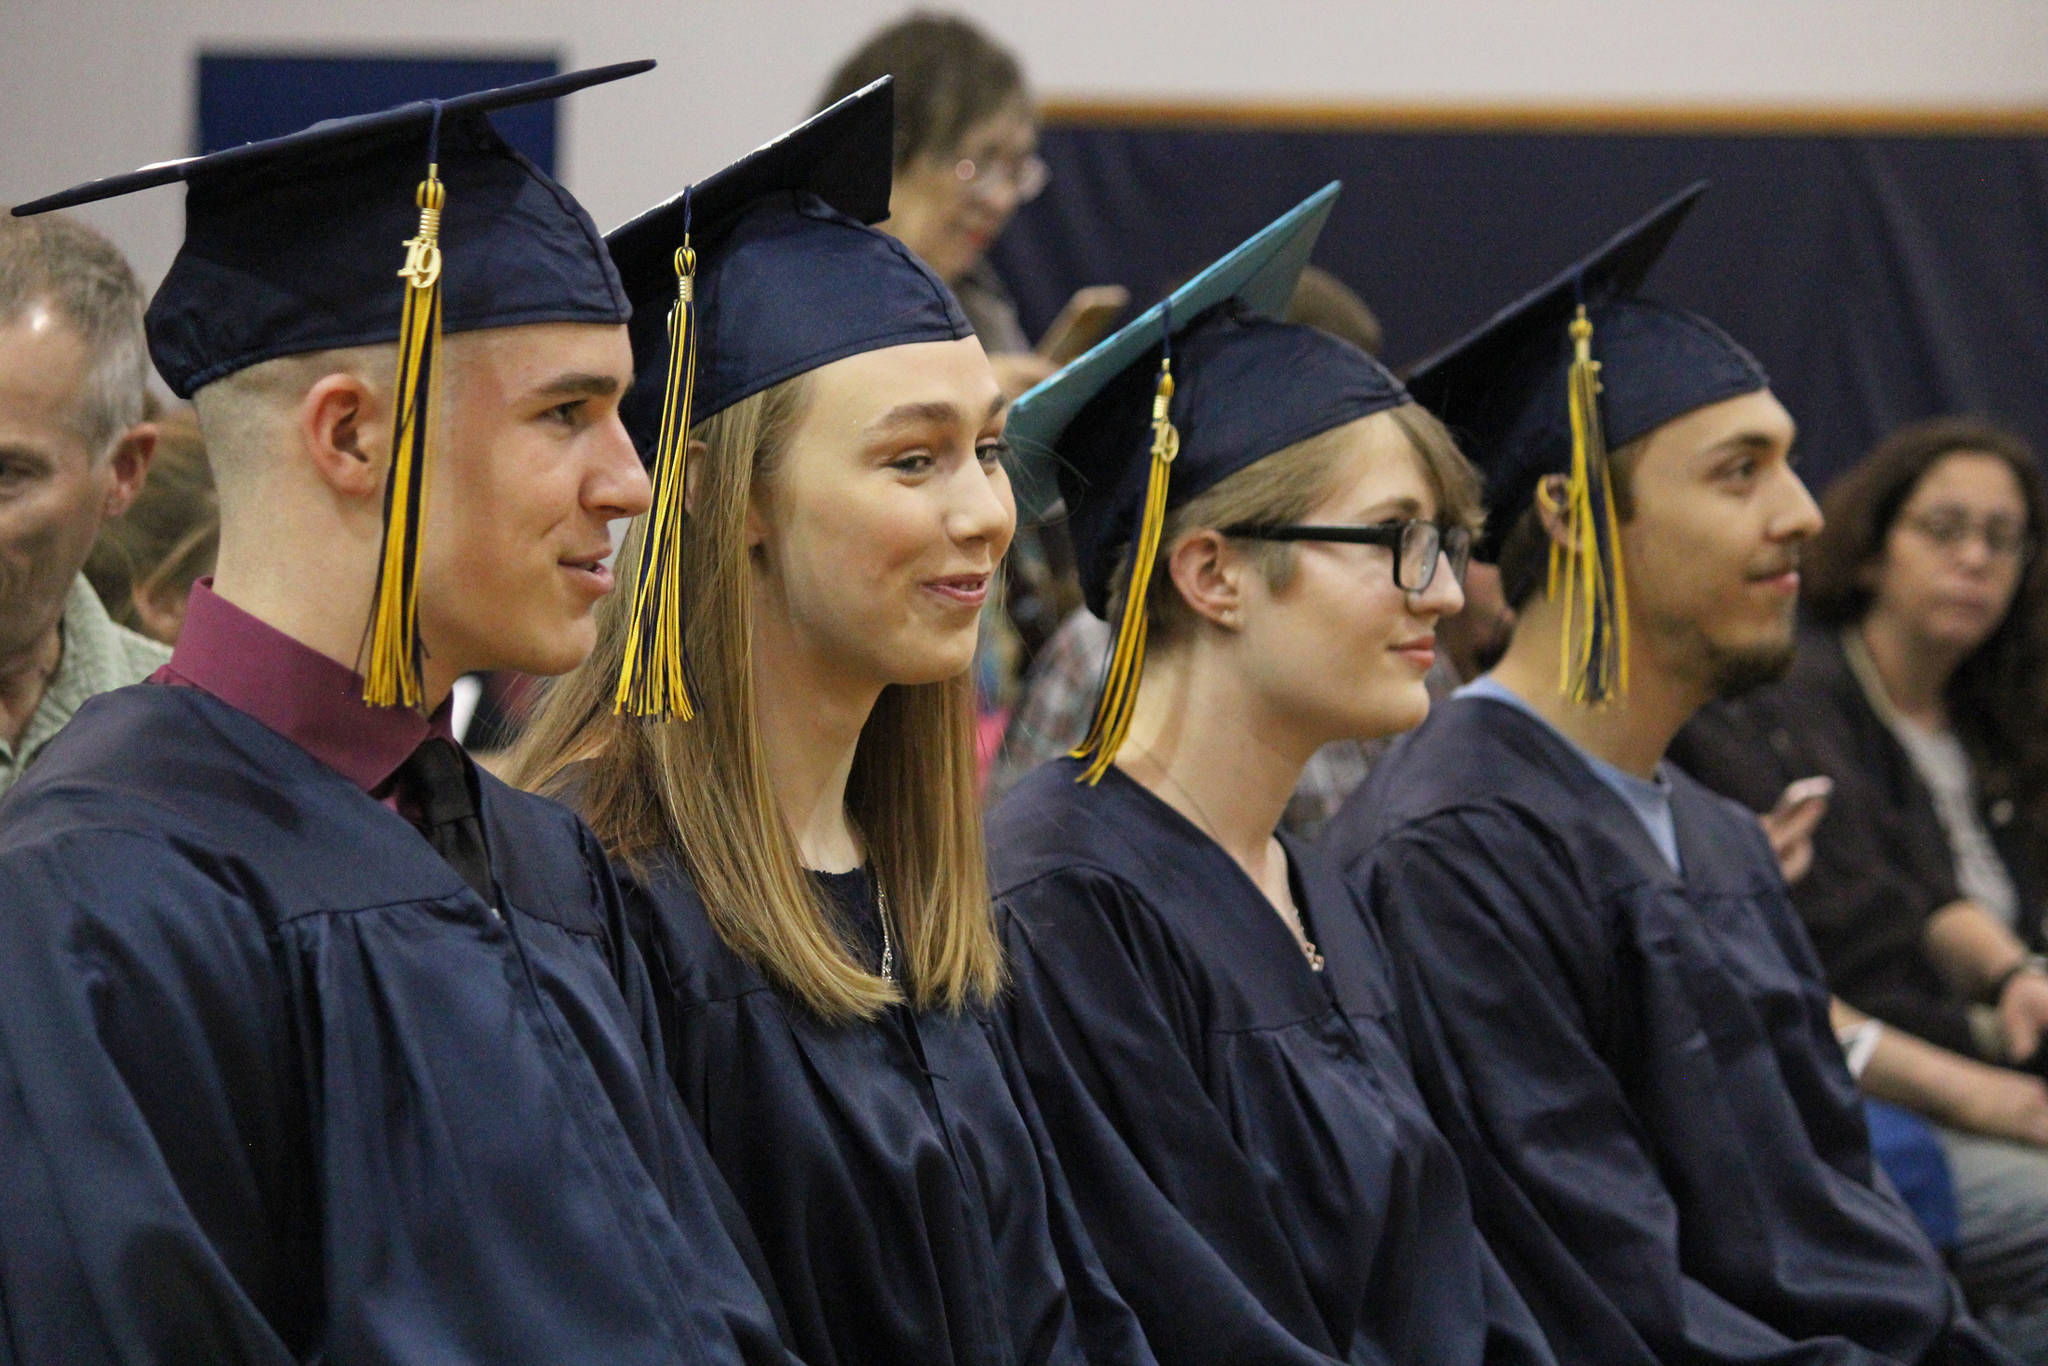 From left to right, the four 2019 Ninilchik School graduates: Garrett Koch, Isabella Koch, Tala Hadro and Jacob Shell listen during their graduation ceremony Tuesday, May 21, 2019 at Ninilchik School in Ninilchik, Alaska. (Photo by Megan Pacer/Homer News)